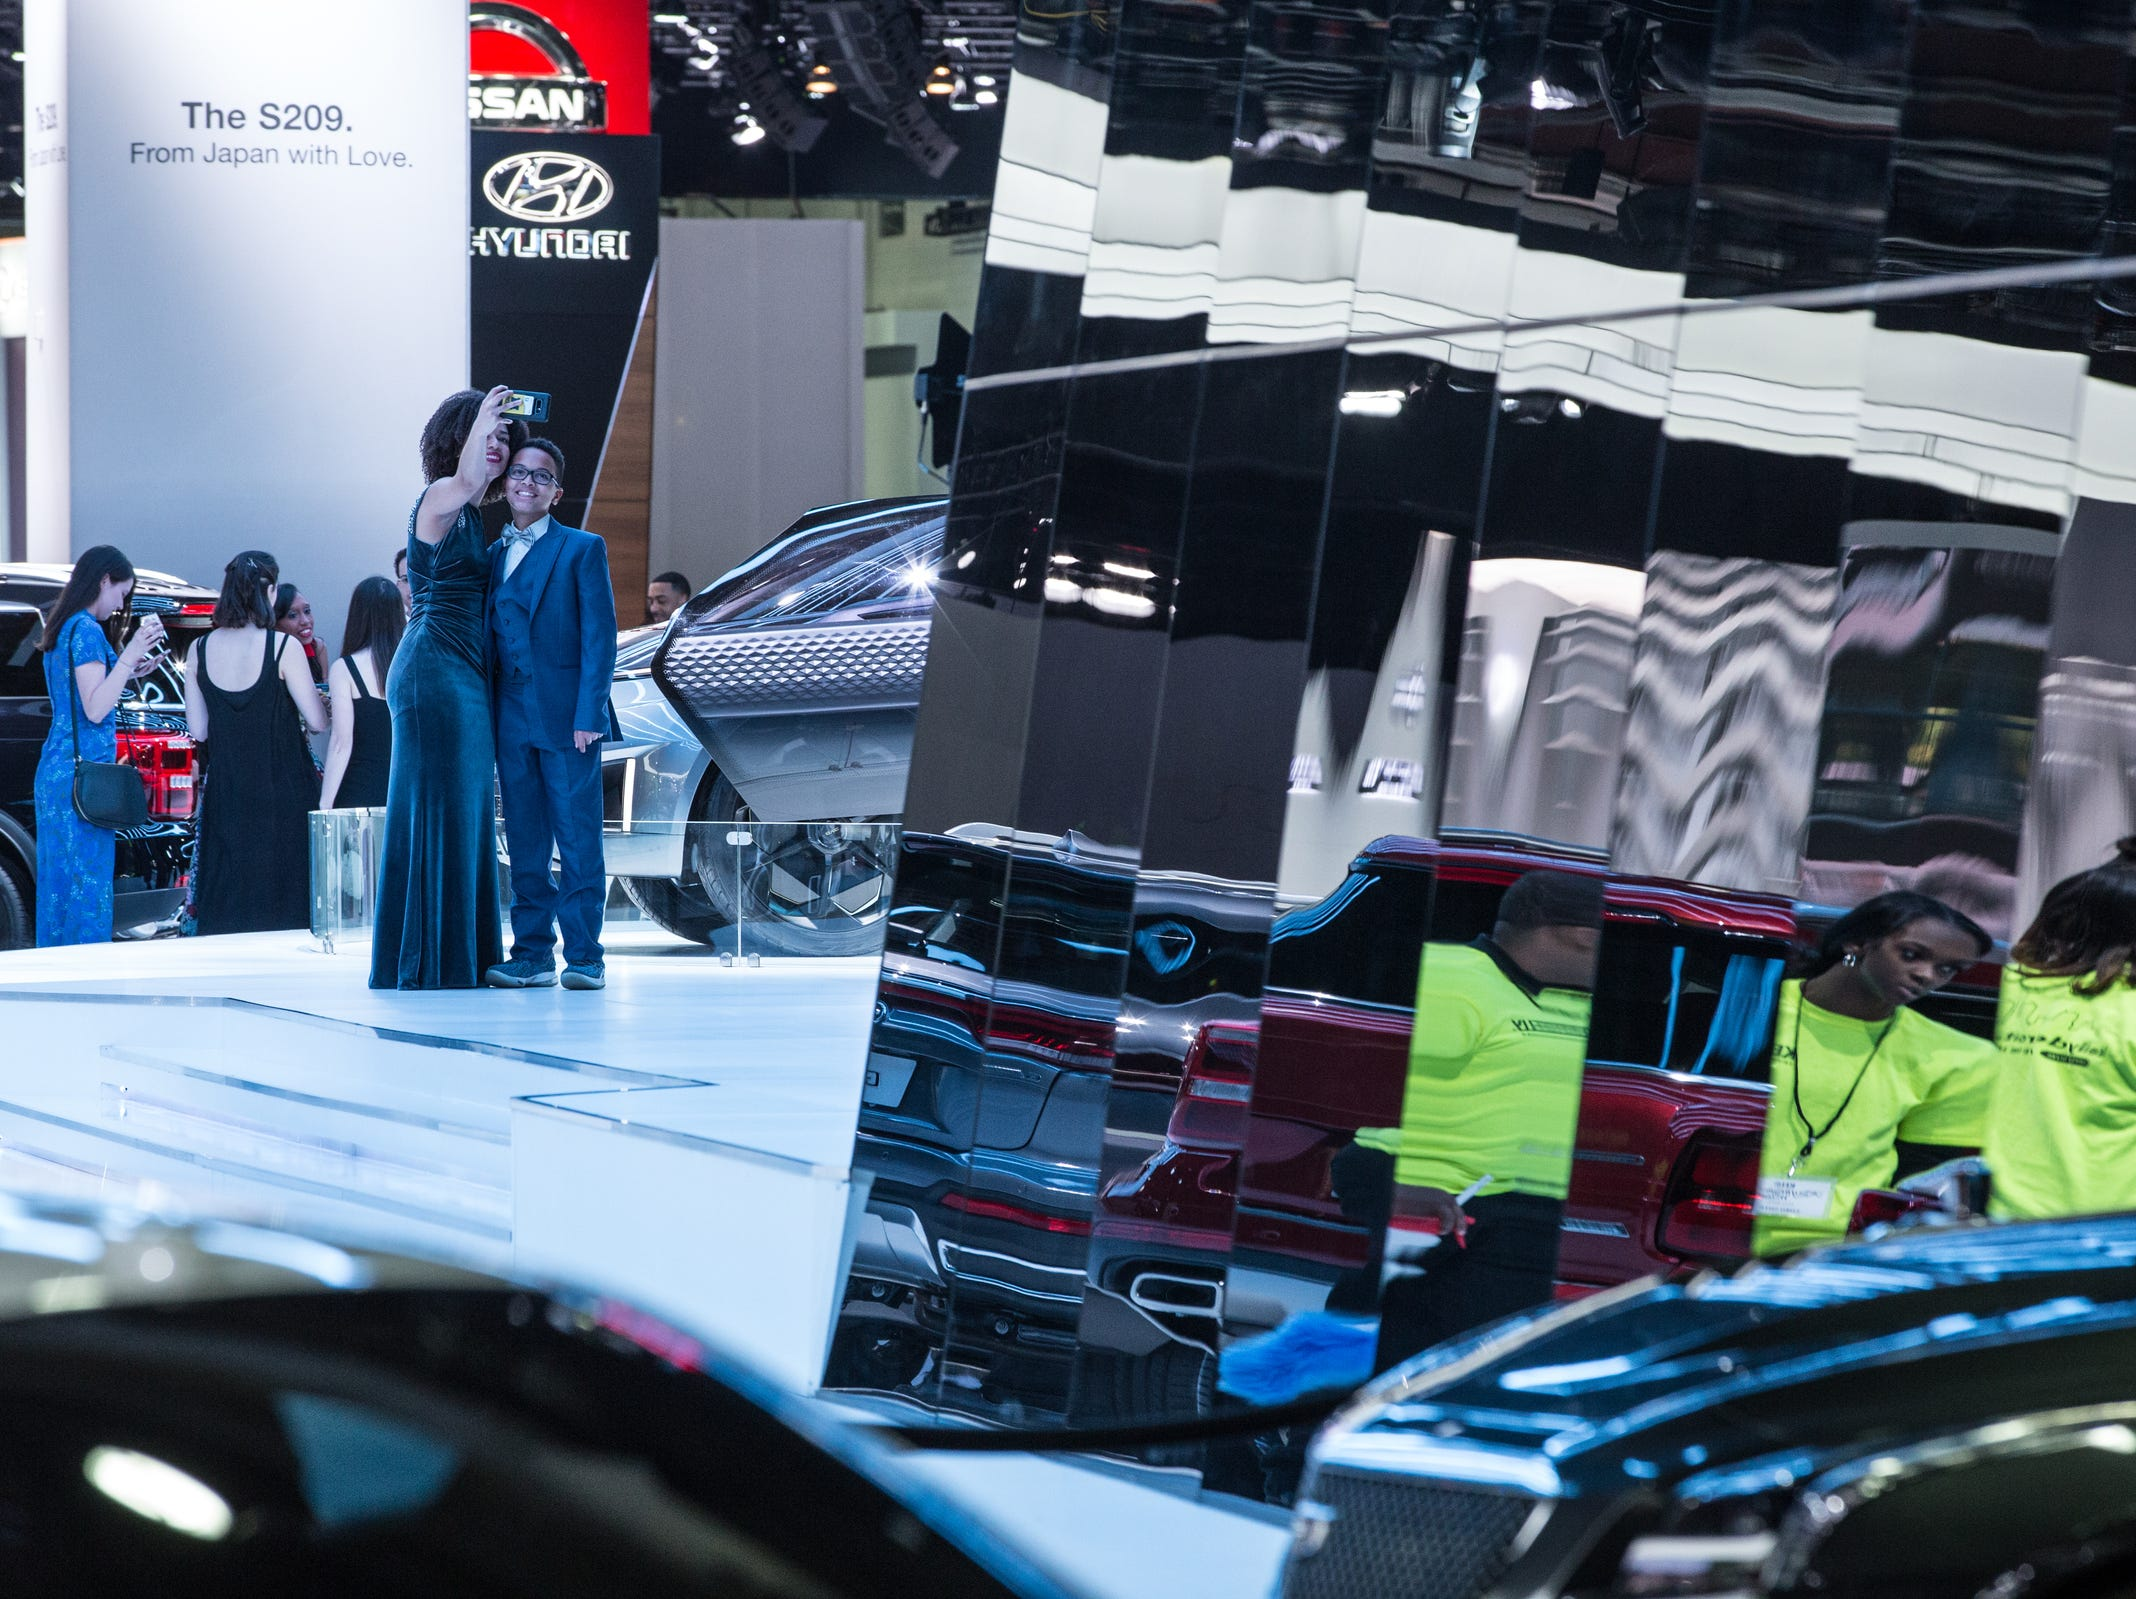 People take a photo in the GAC area during the 2019 North American International Auto Show Charity Preview at Cobo Center in Detroit on Friday, January 18, 2019.